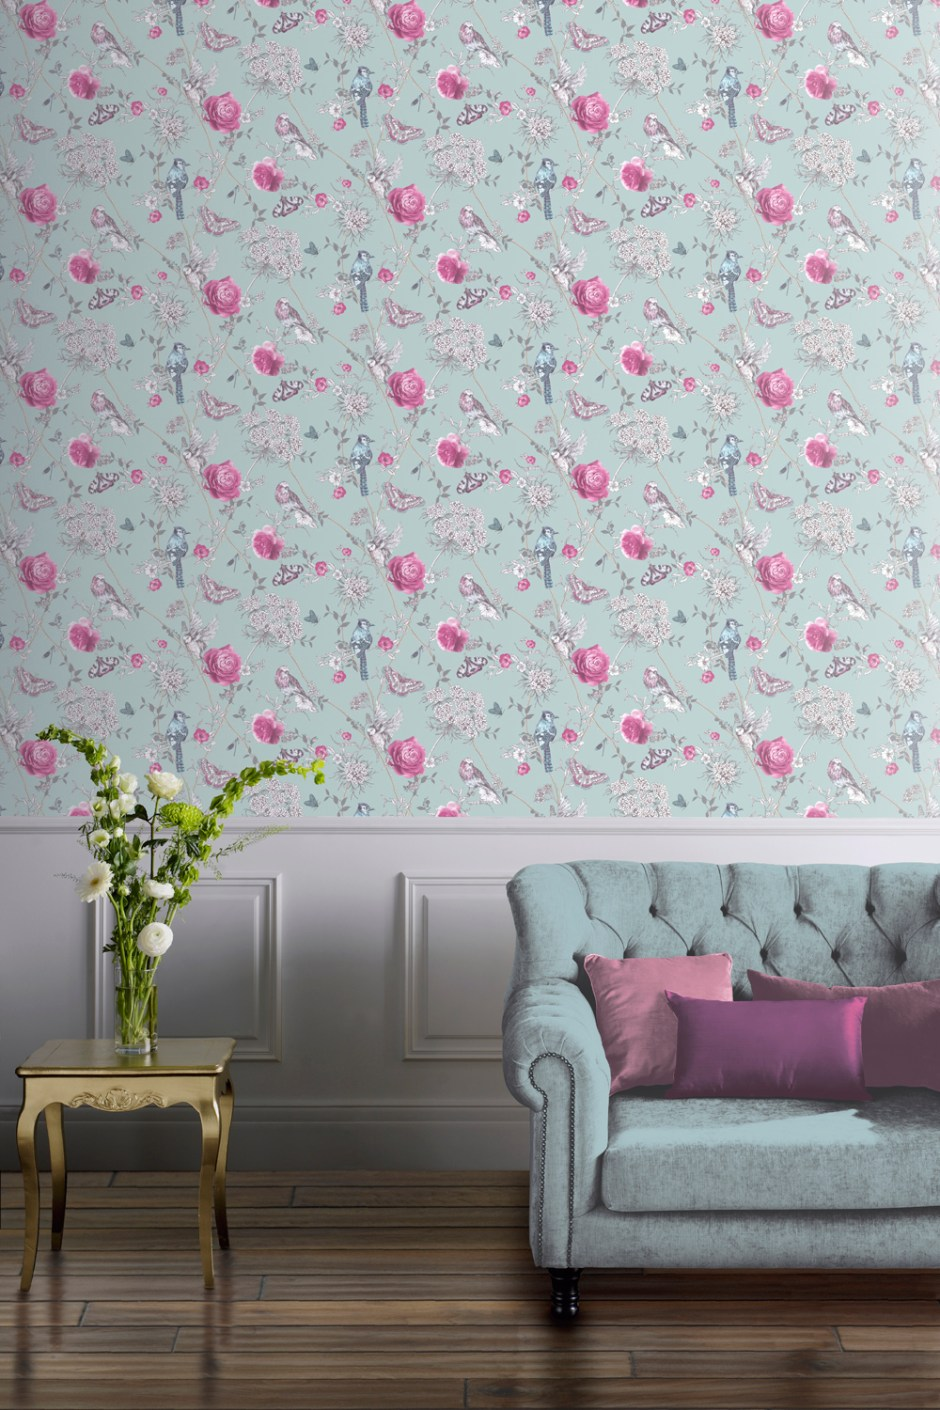 How To Use Neo Mint Colour of 2020 - Paradise Garden Bird wallpaper that introduces Neo Mint Colour of 2020 into your home decor choices. Perfect for adding pattern and subtle colour that is uplifting and calming.